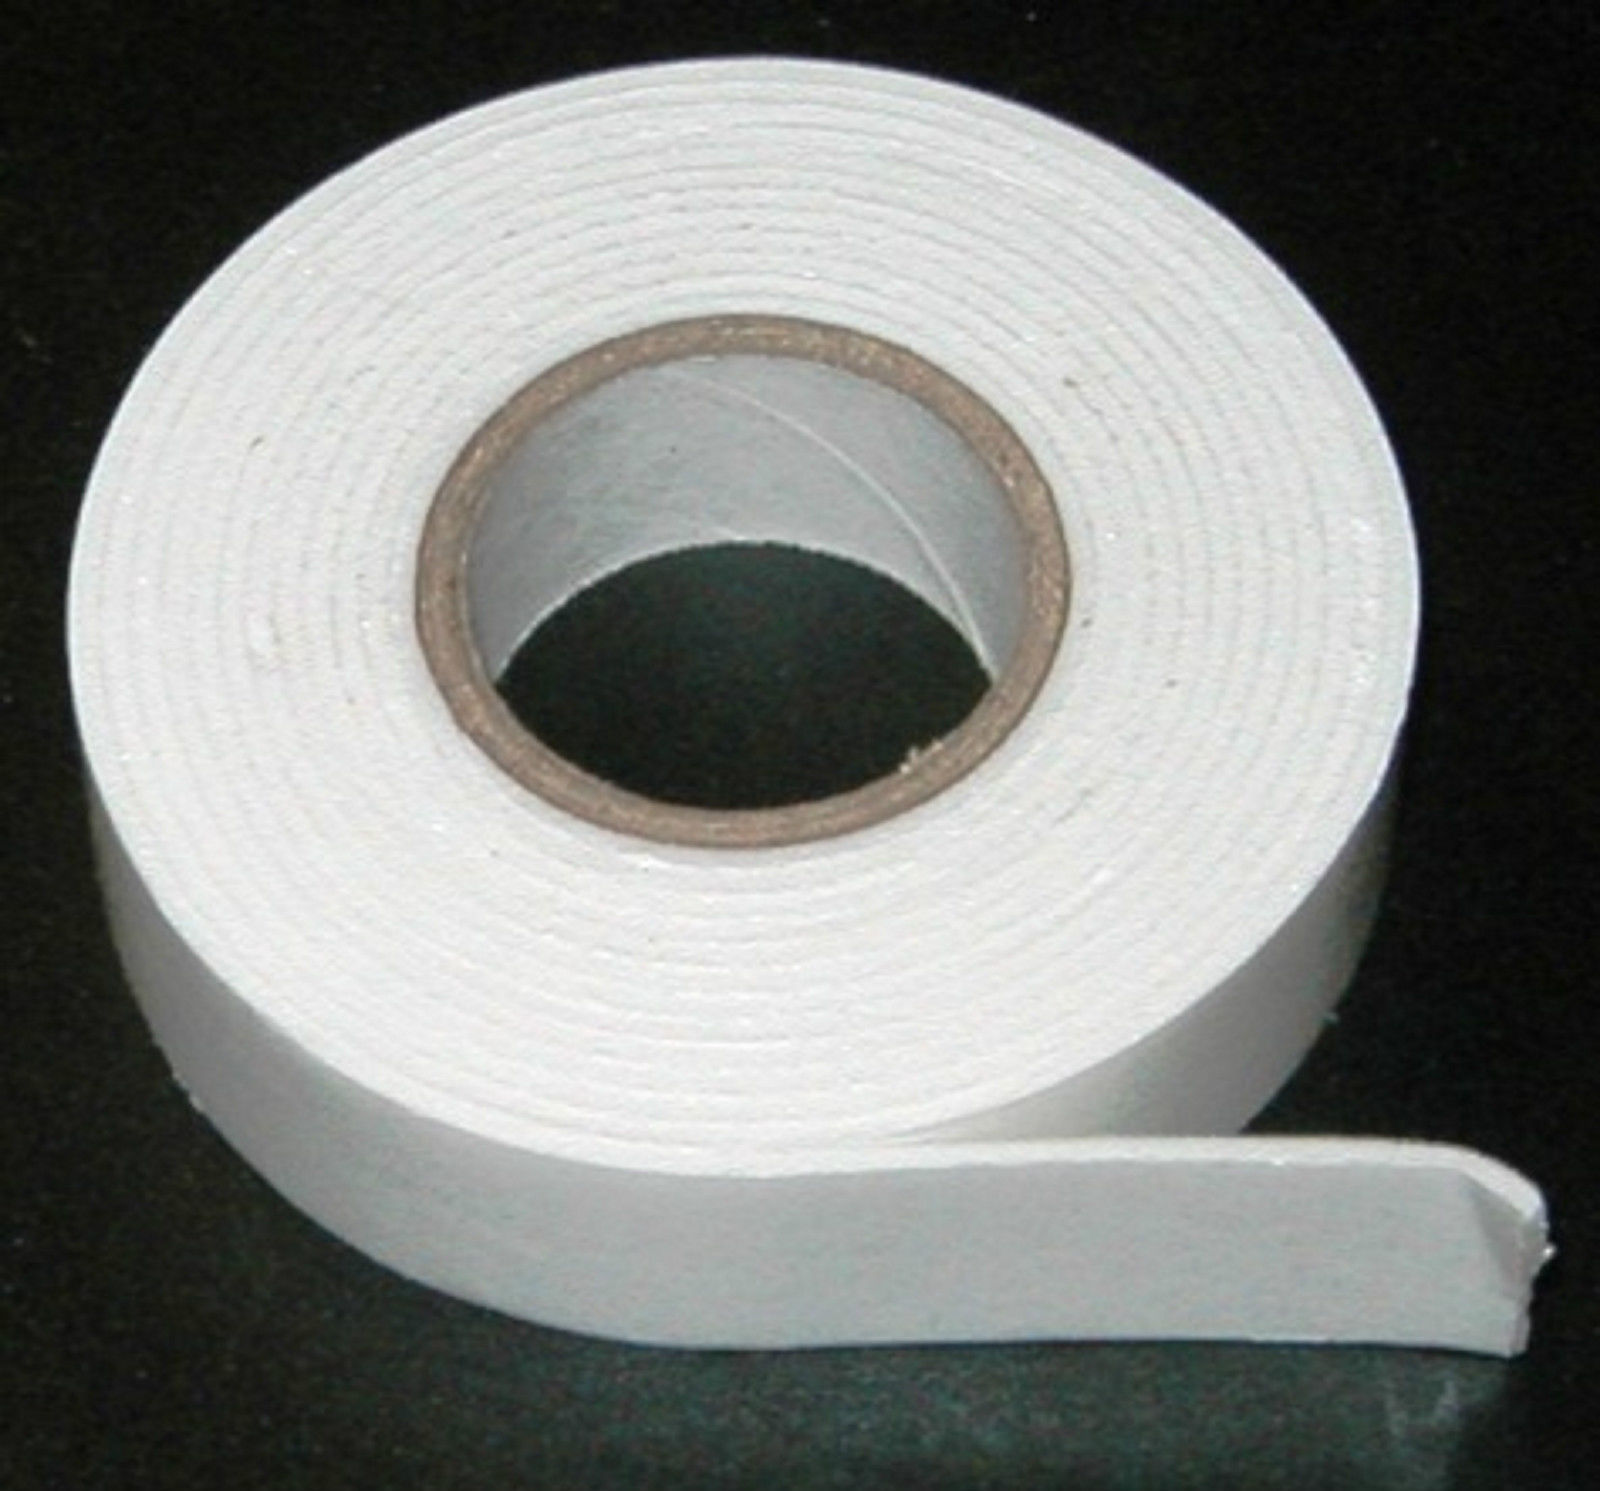 Double Sided Tape Manufacturers In Nagpur